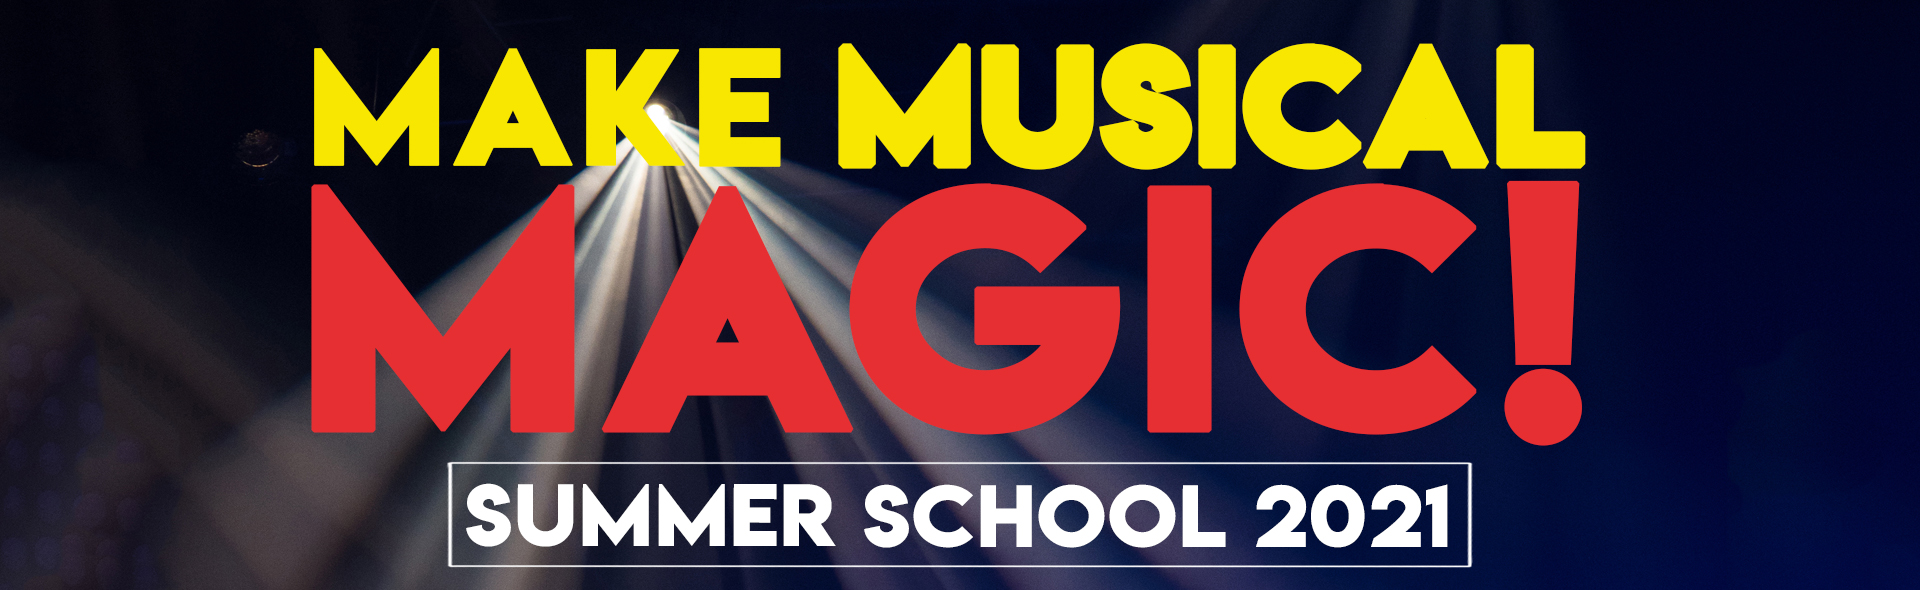 Image showing the words Make Musical Magic! Summer School 2021